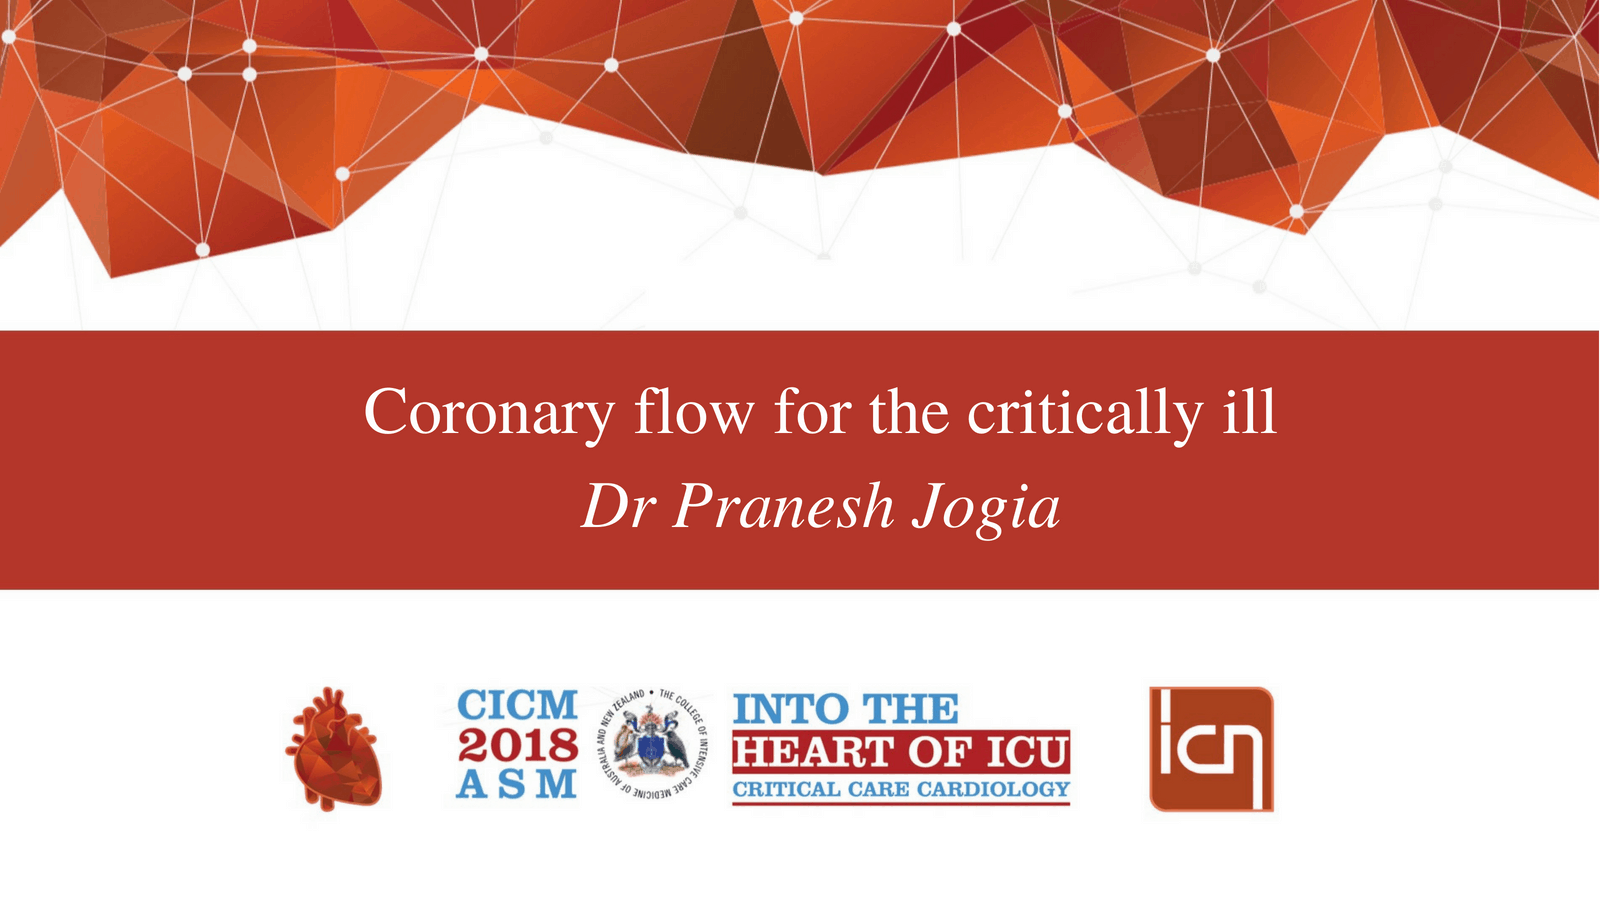 Coronary flow for the critically ill